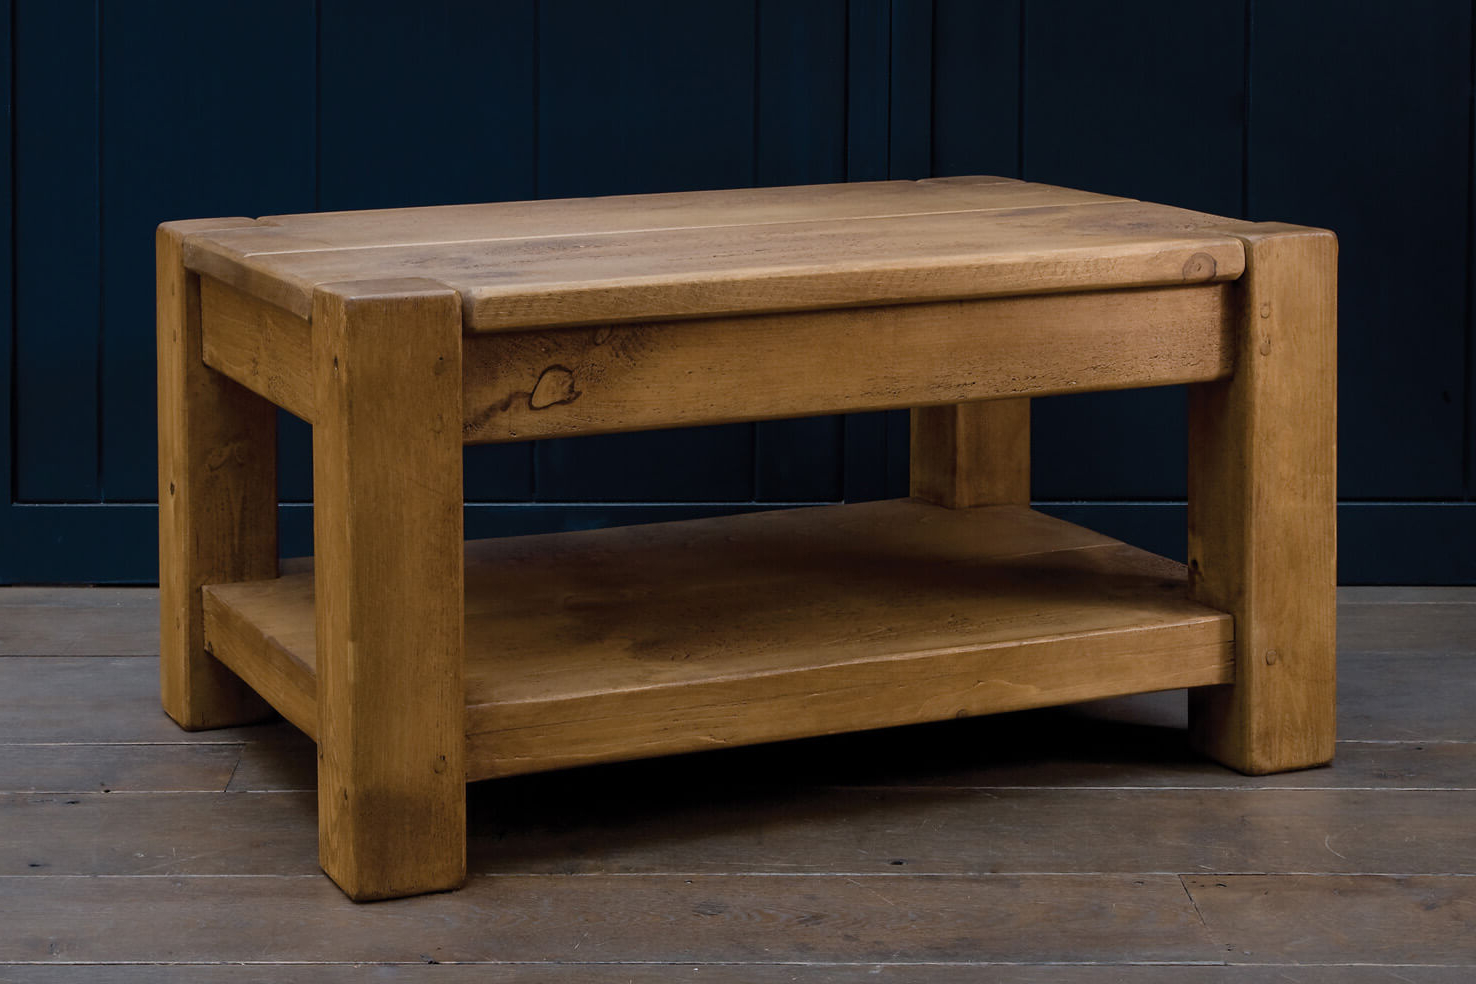 Favorite Rustic Wood Coffee Tables Handmade From Solid Oak Planks (View 4 of 20)